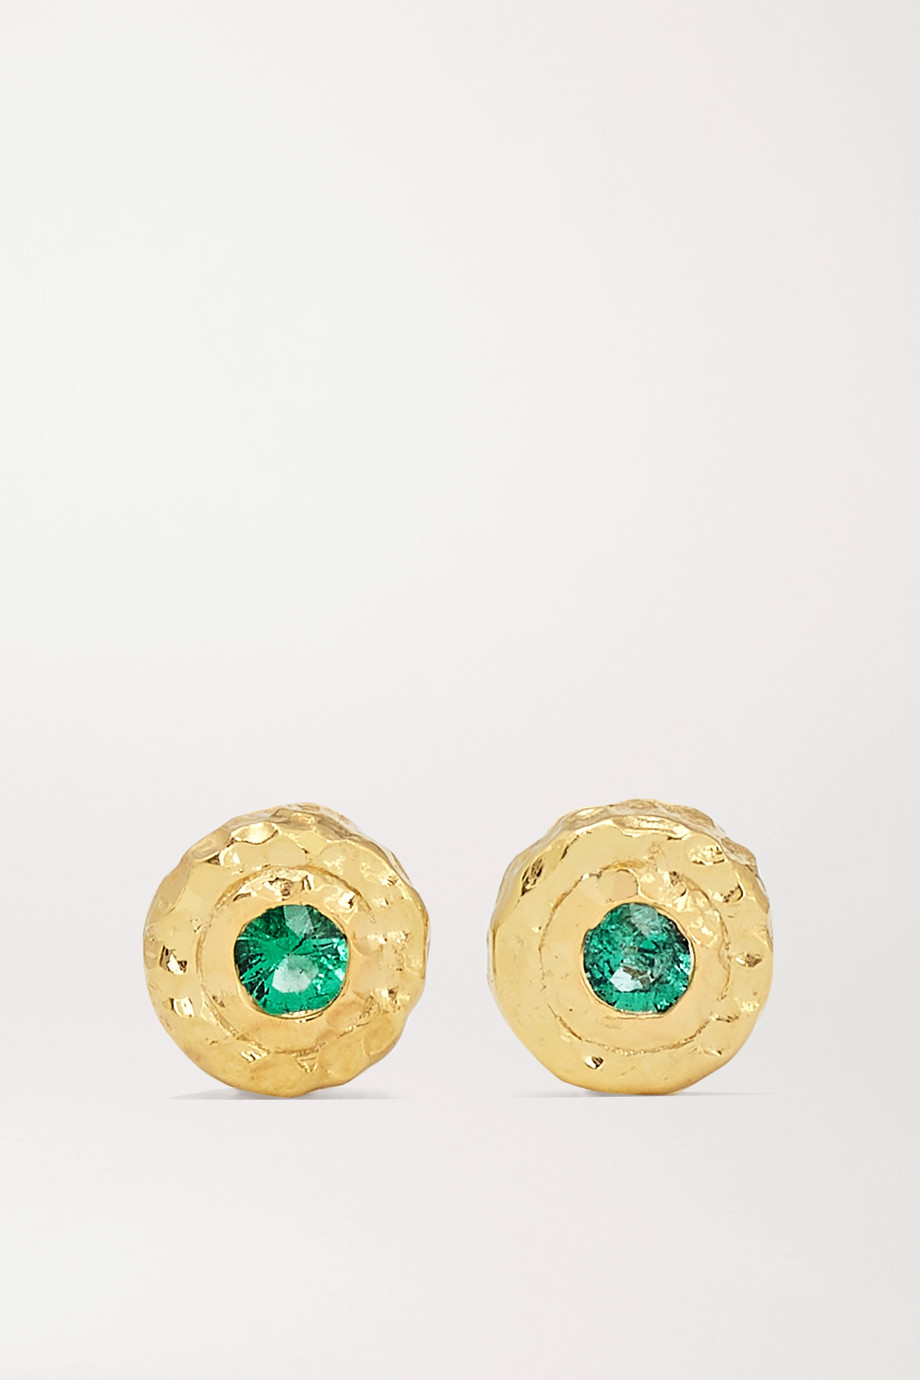 Octavia Elizabeth + NET SUSTAIN Nestling Gem 18-karat gold emerald earrings